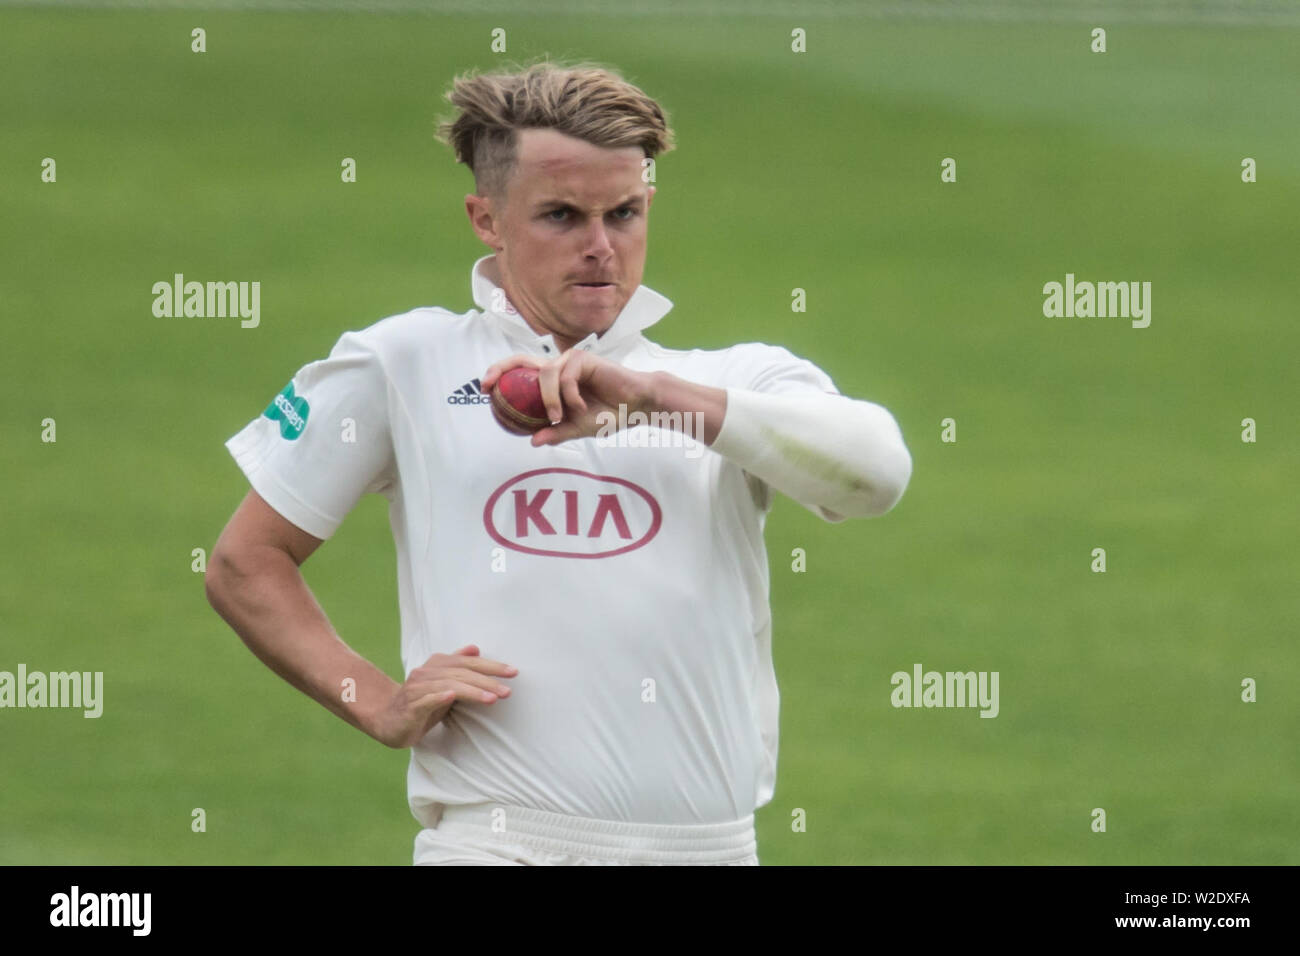 London, UK. 8th July, 2019. Sam Curran bowling for Surrey against Kent on day two of the Specsavers County Championship game at the Oval. Credit: David Rowe/Alamy Live News Stock Photo